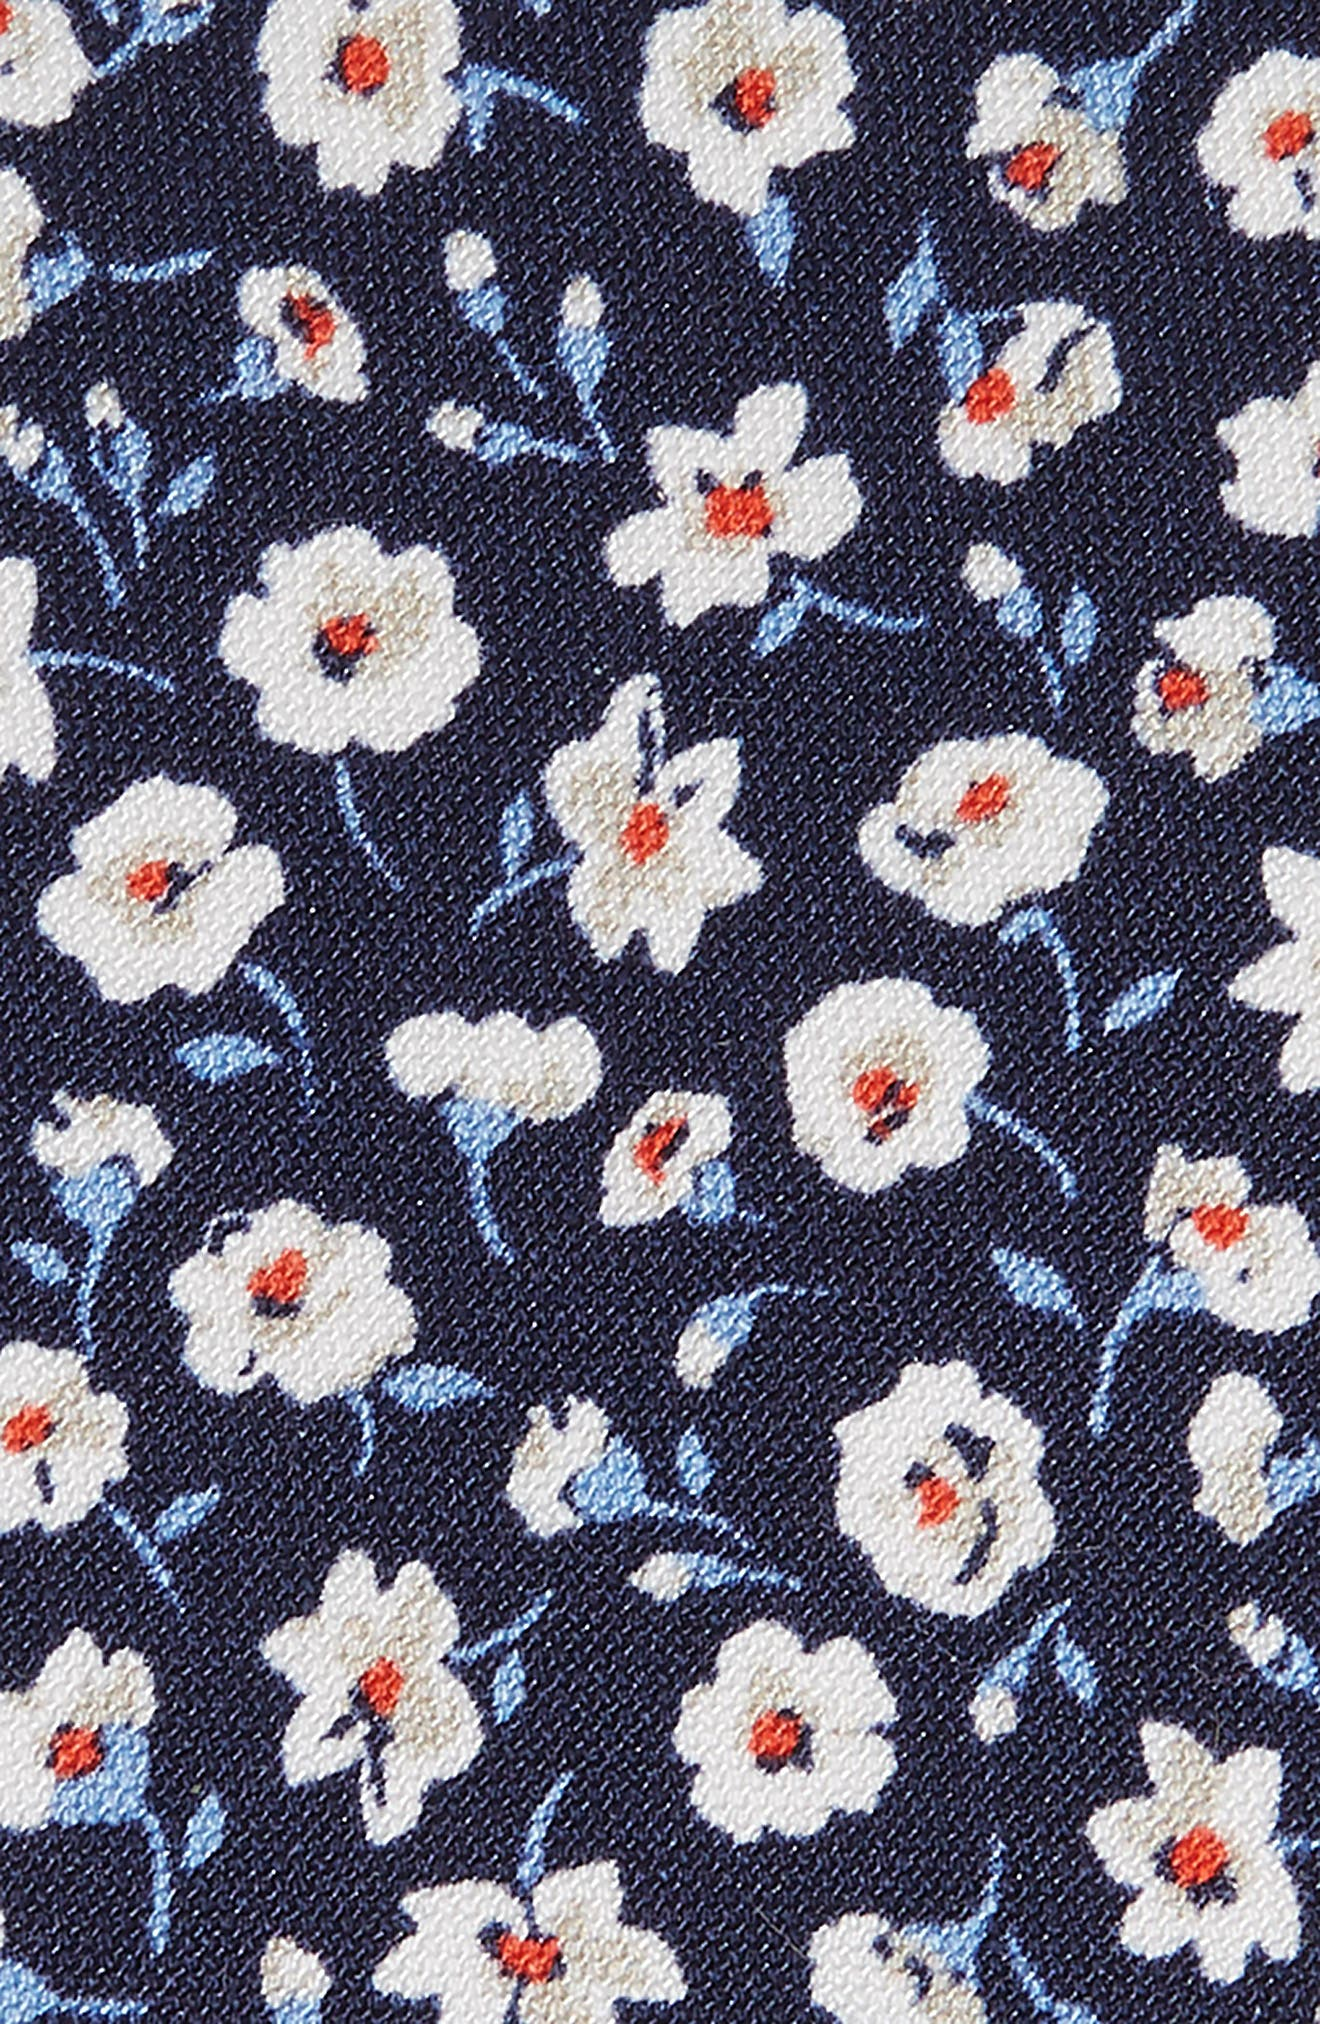 Floral Cotton & Silk Tie,                             Alternate thumbnail 2, color,                             Navy